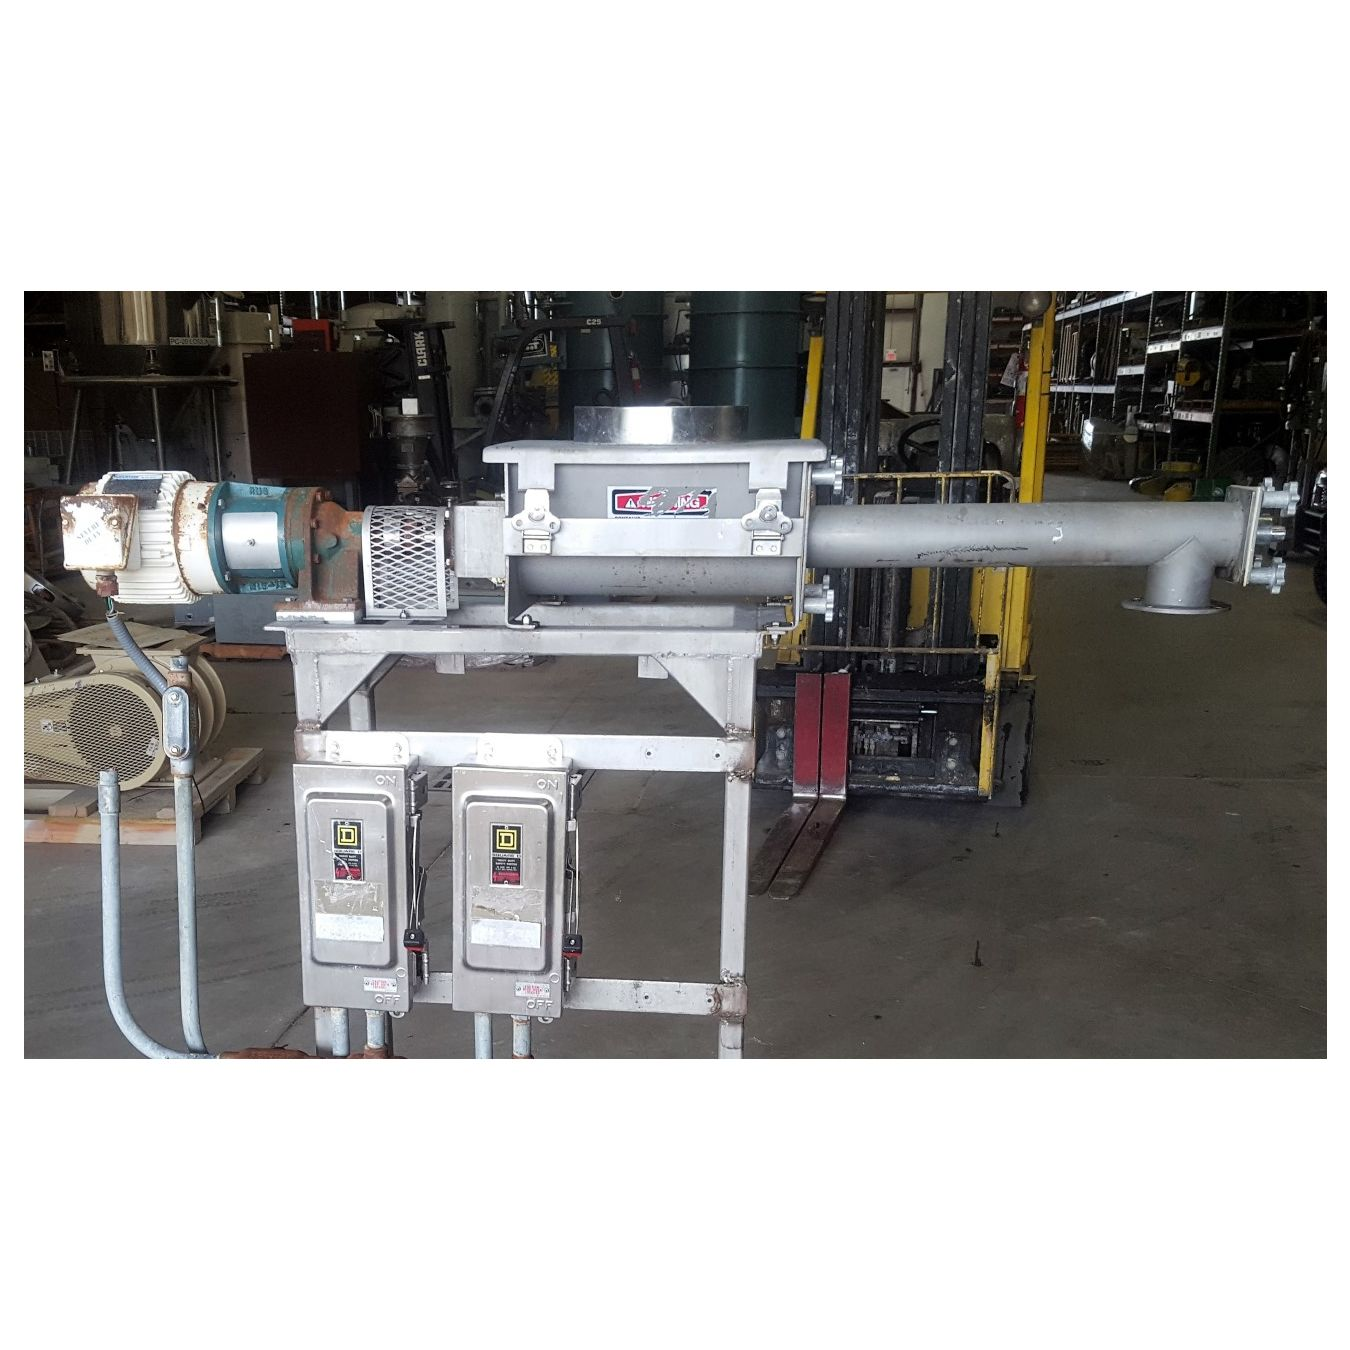 focused weight feeder refill product feeders corp hopper in with volumetric qpbctujefrtvcbk eas loss